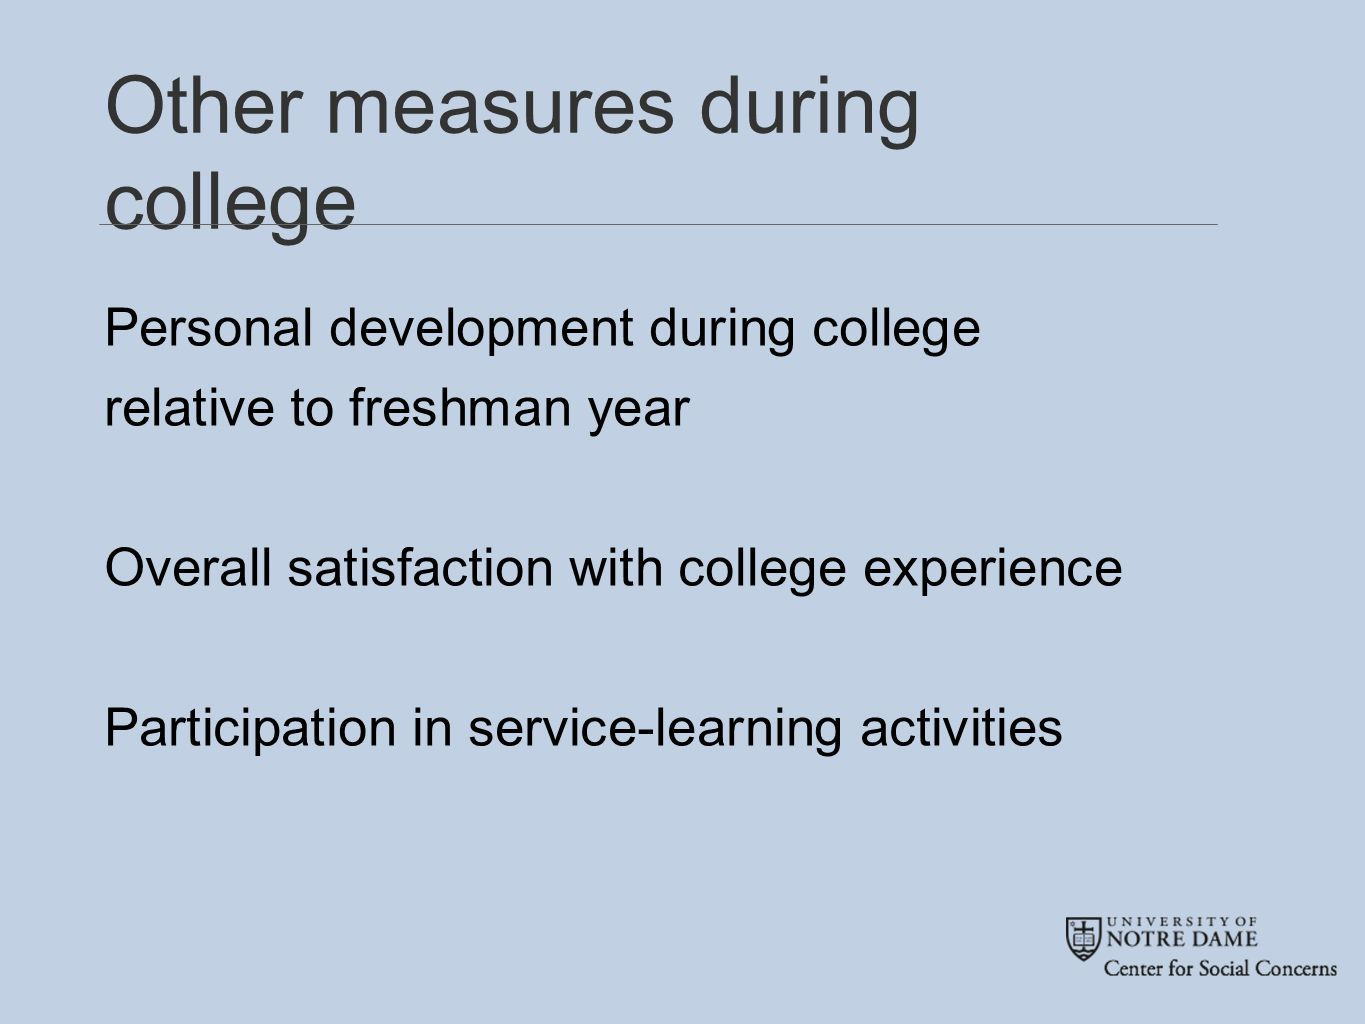 Other measures during college Personal development during college relative to freshman year Overall satisfaction with college experience Participation in service-learning activities